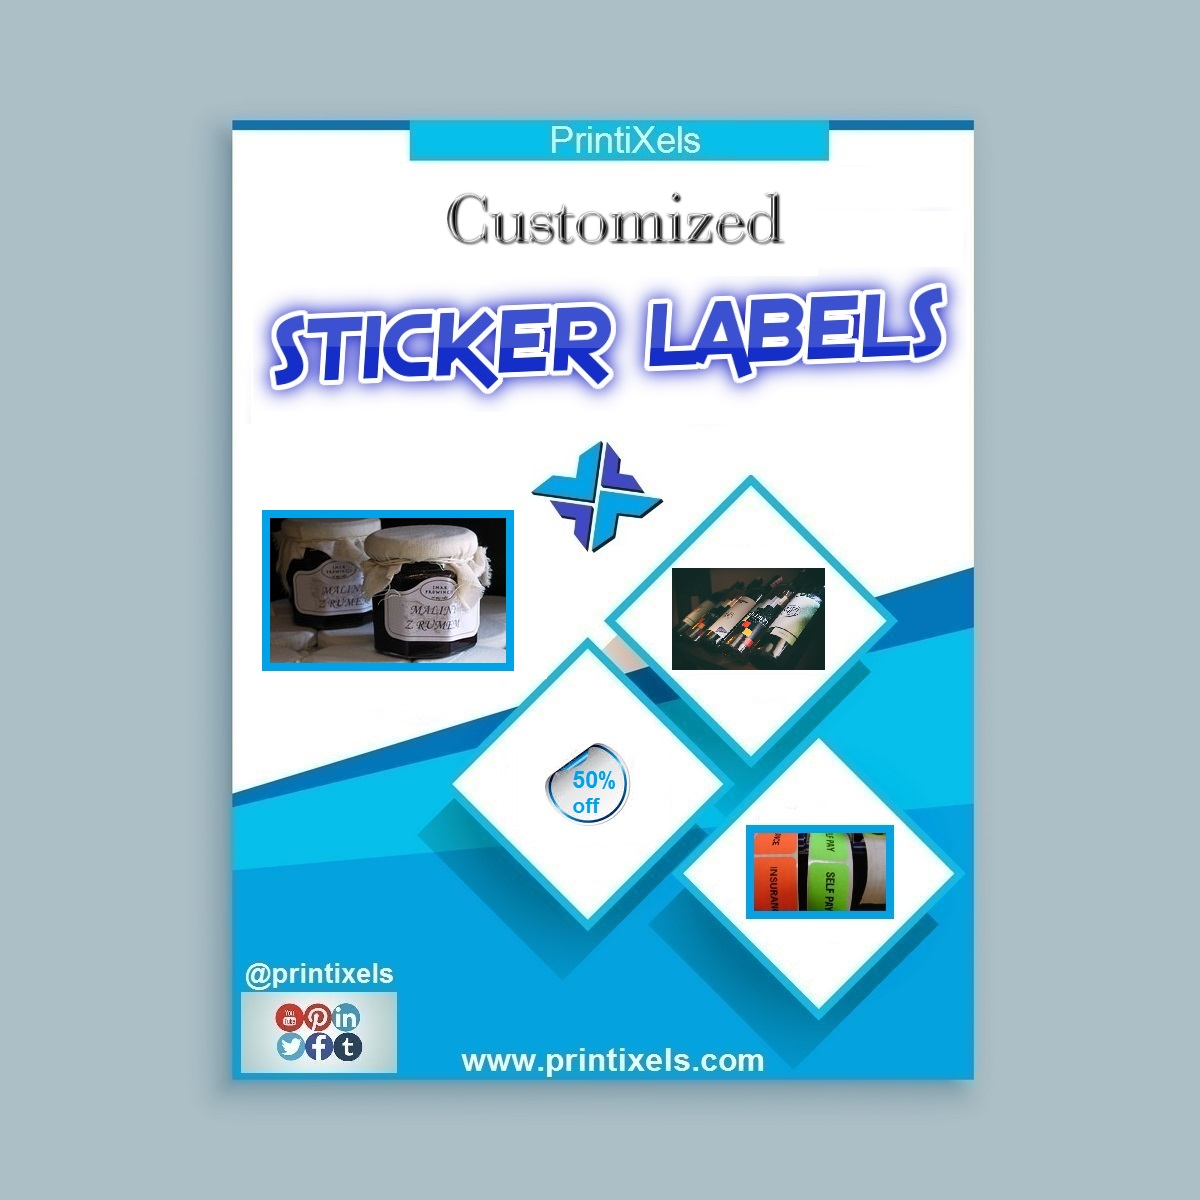 Car sticker maker philippines - Sticker Label Printing Services